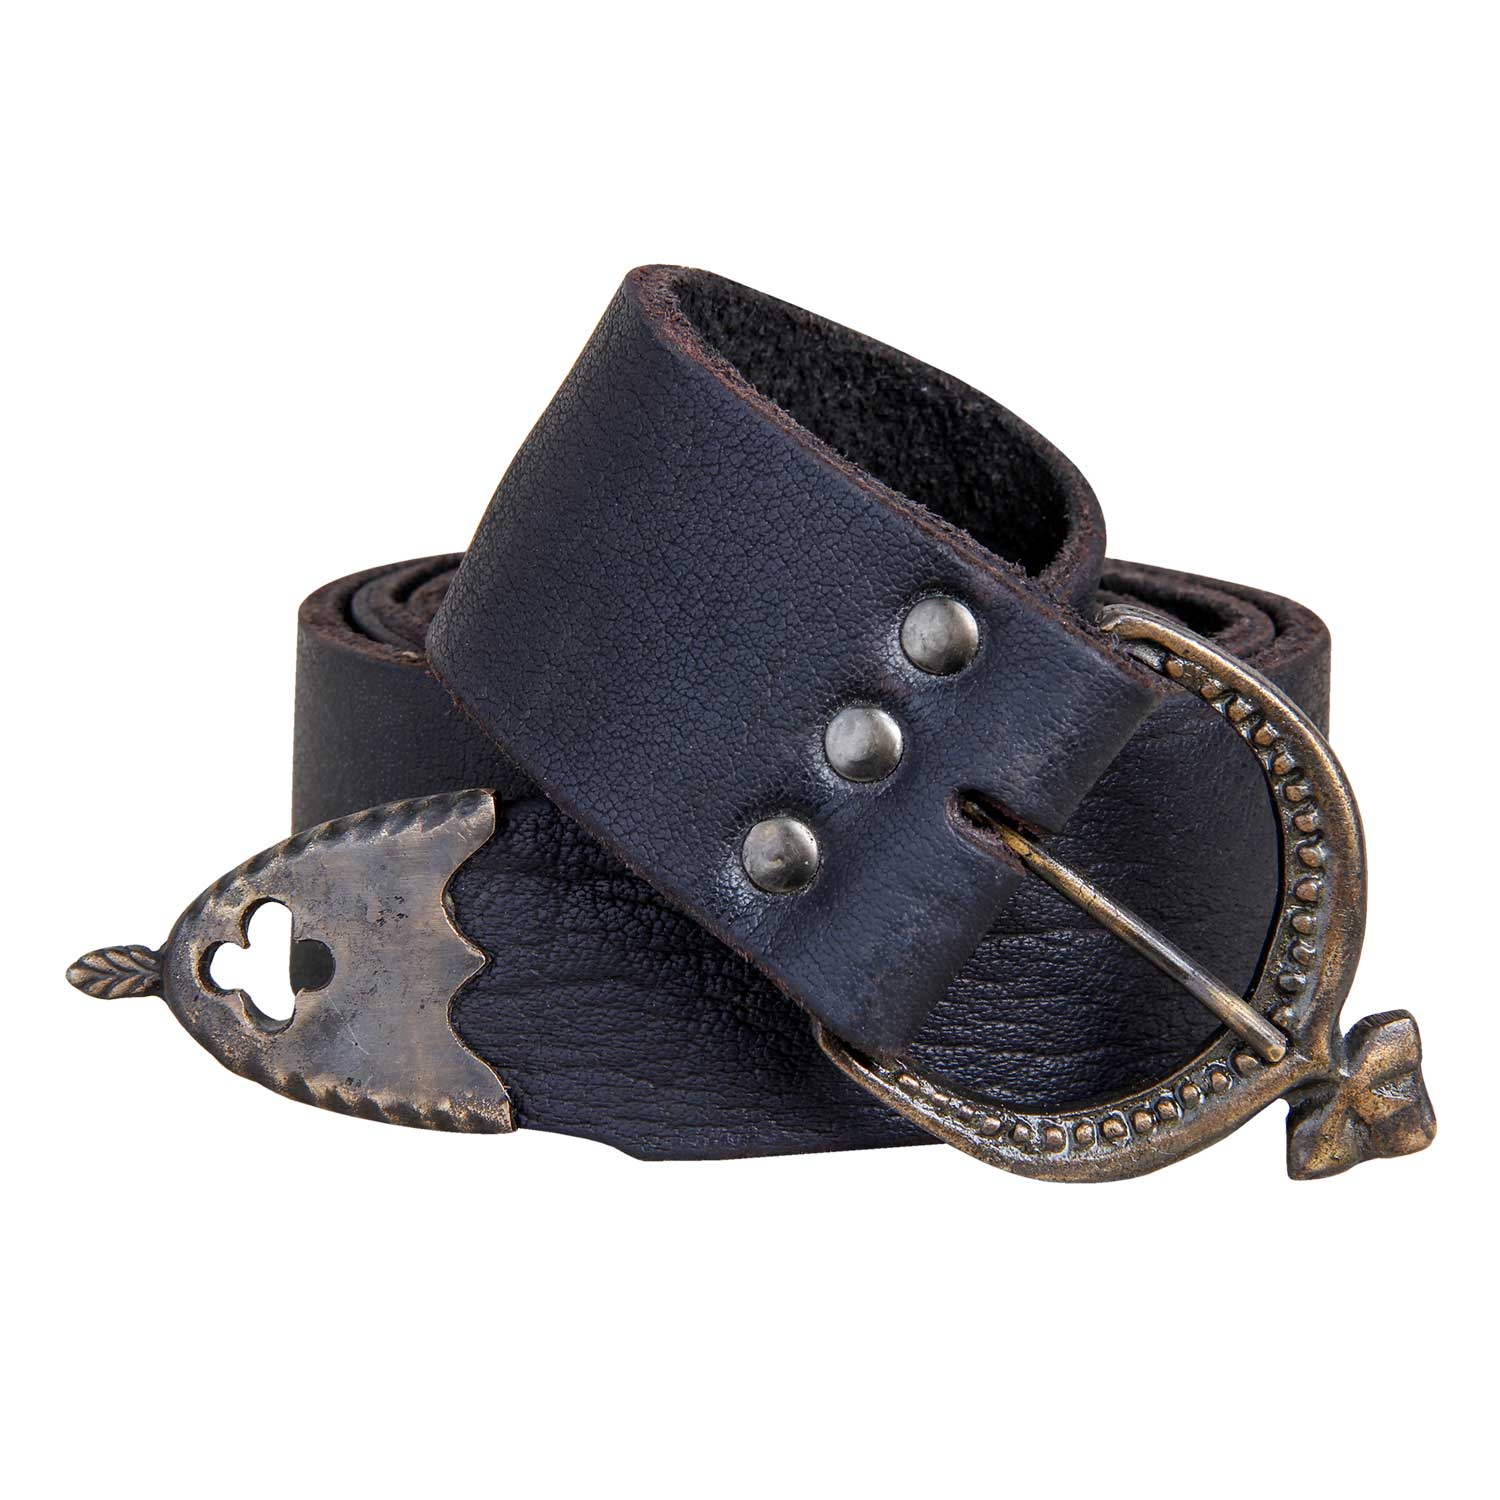 Eberhard belt